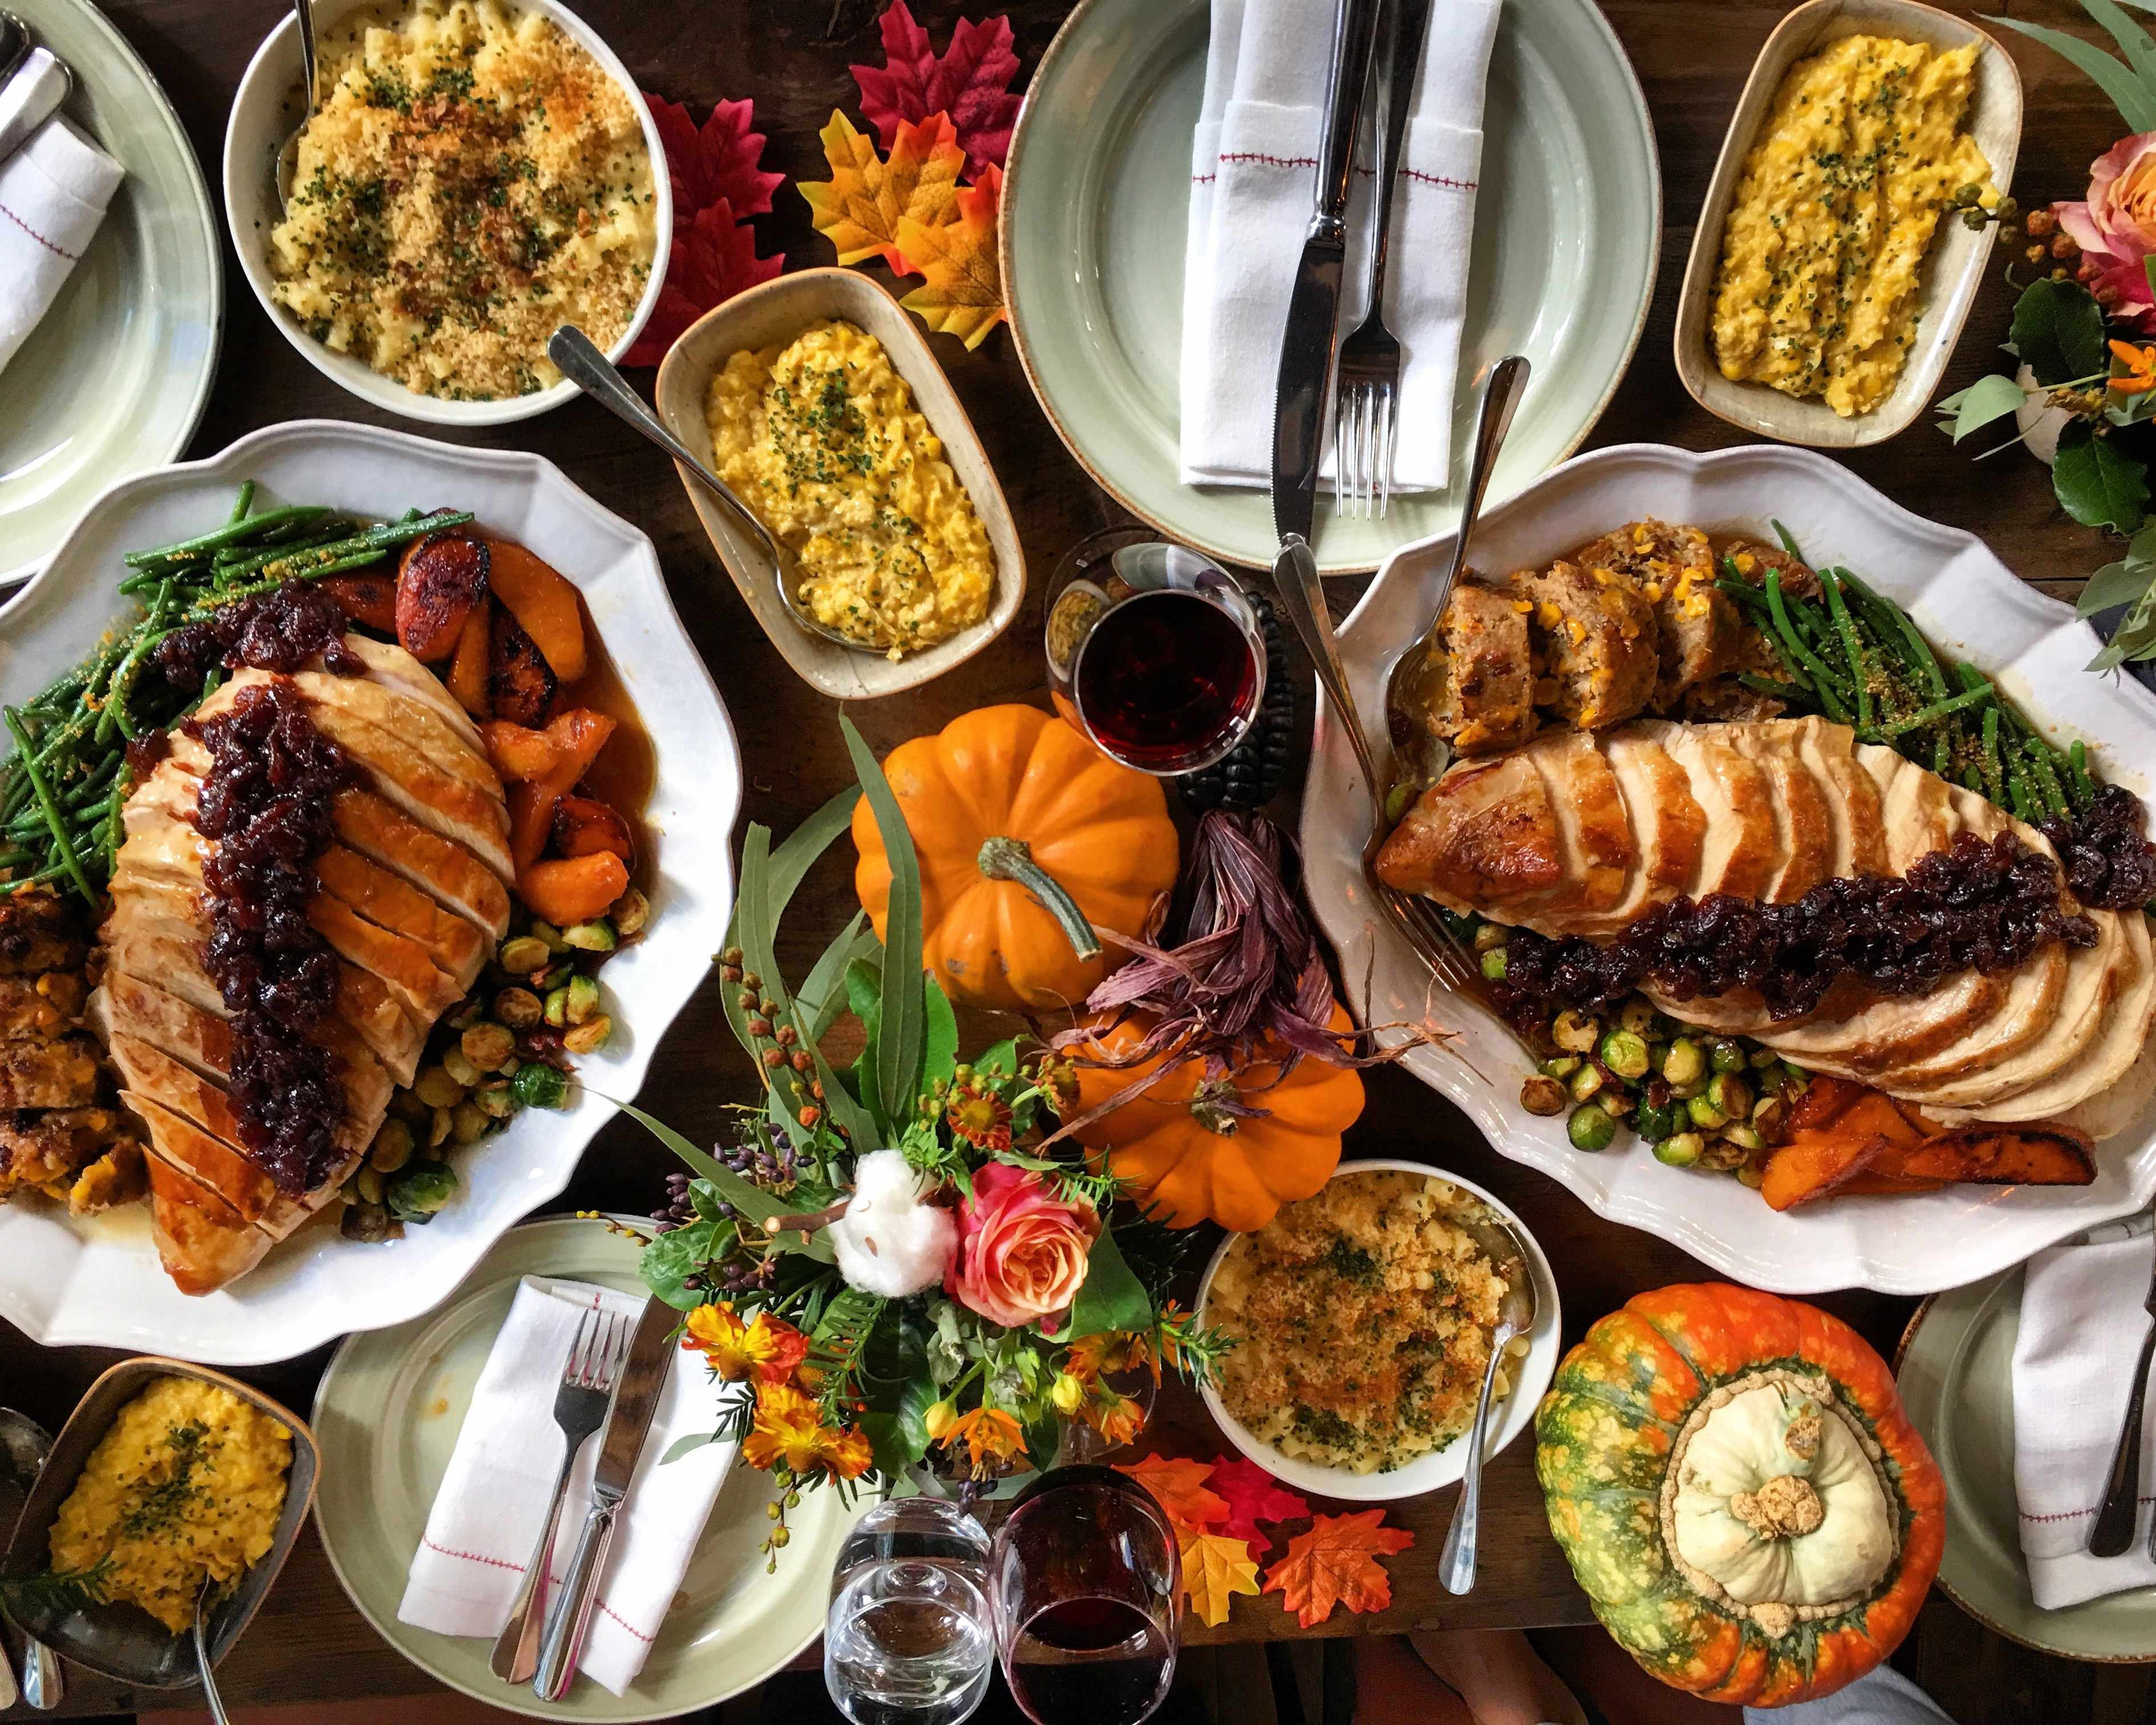 Thanksgiving feast at Rail House Cafe. On the table there is turkey, pumpkins, mac and cheese, stuffings